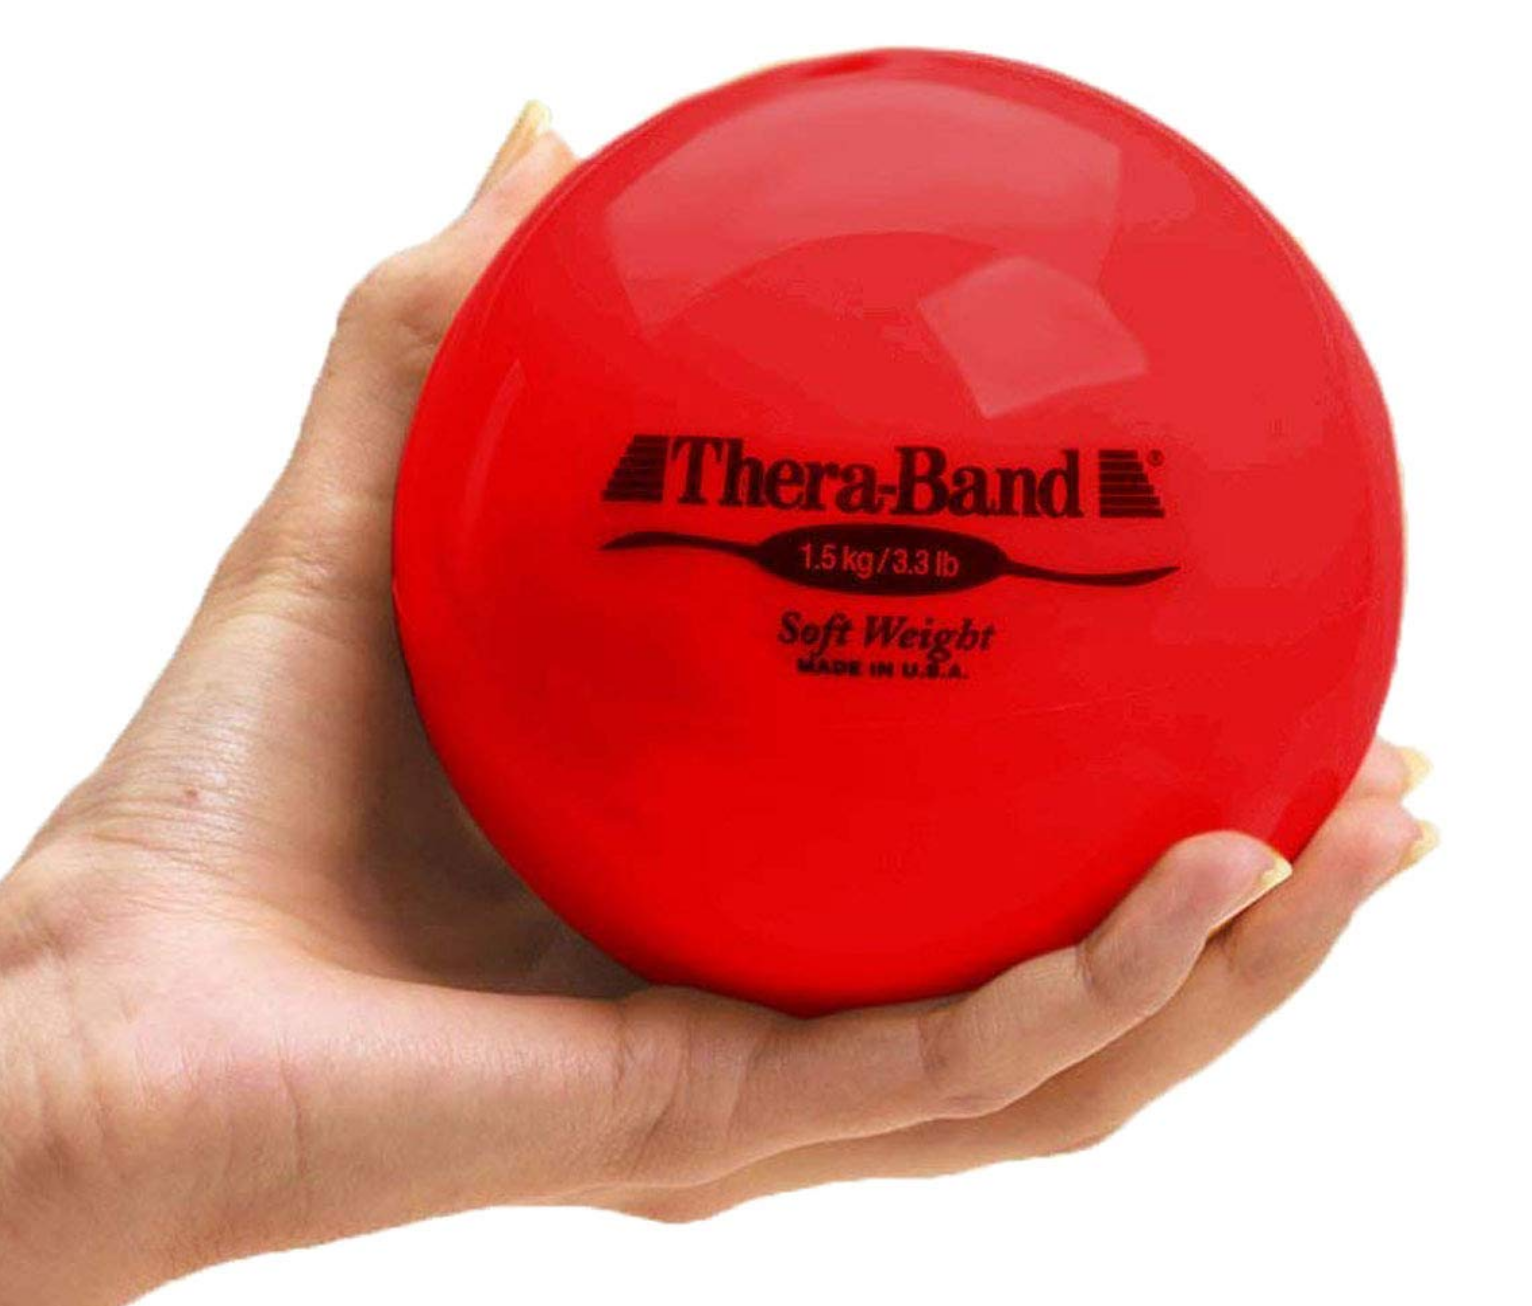 Tan Ball Weight .5 kg TheraBand Soft Weight 1.1 Lbs